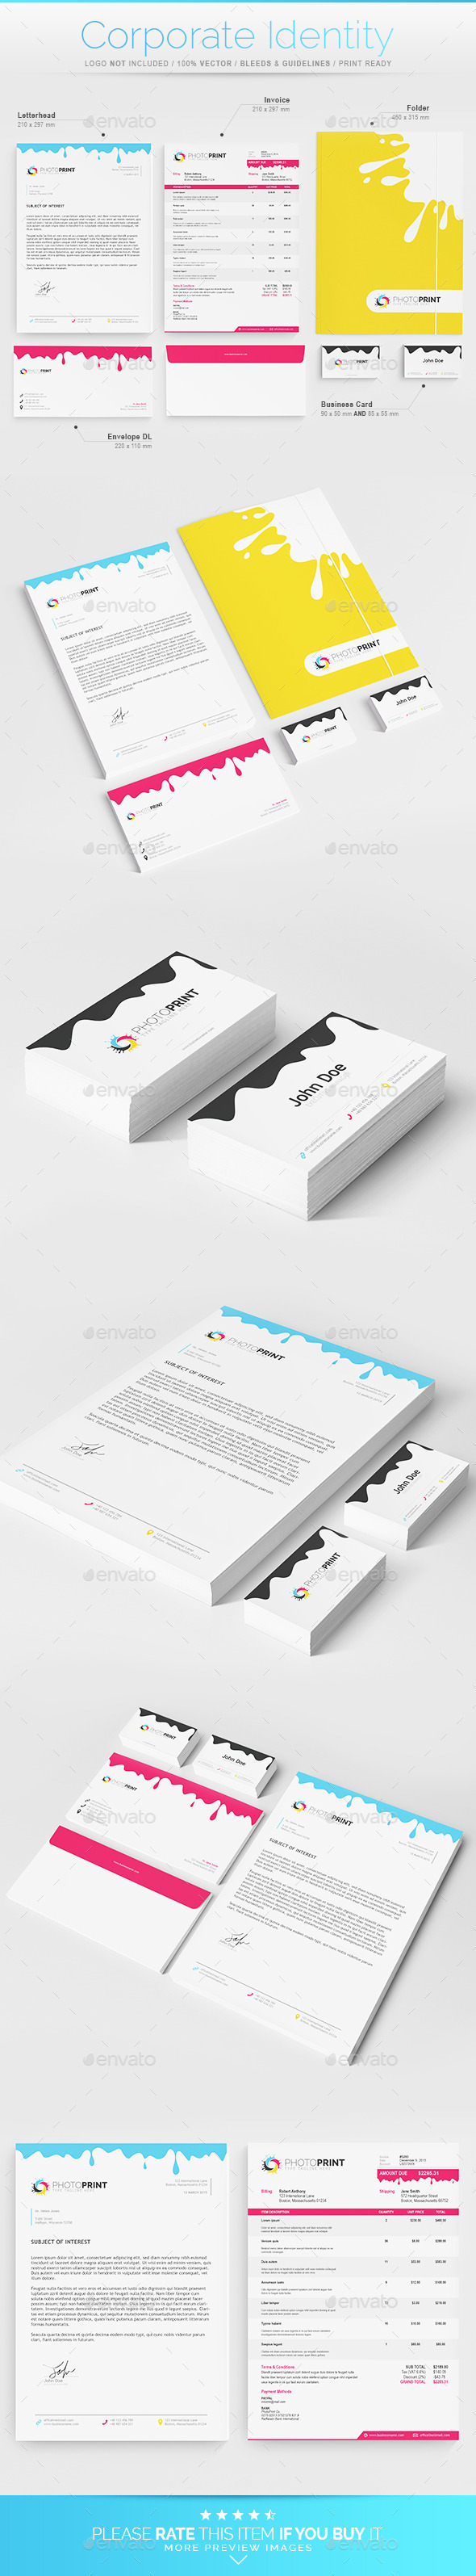 Corporate Identity - Print Industry - Stationery Print Templates